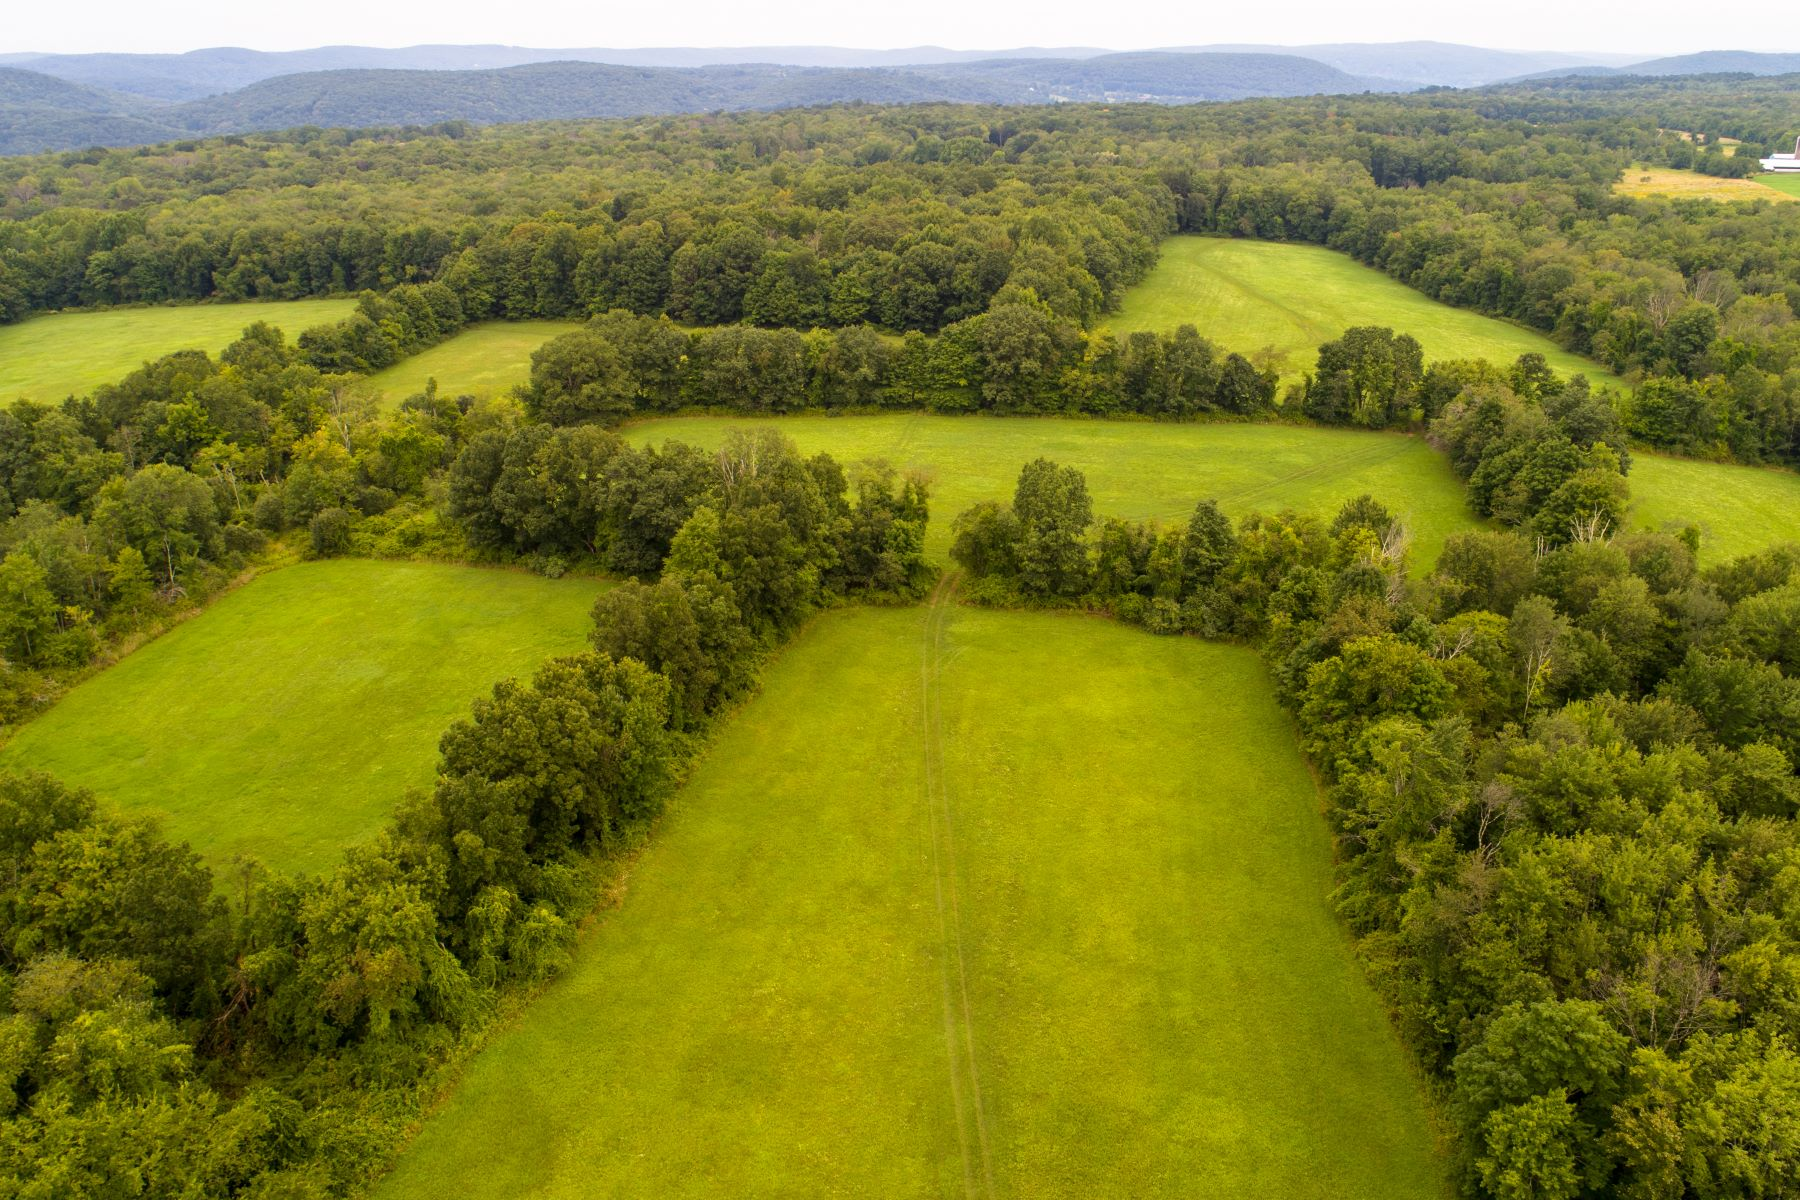 Land for Sale at 37 Popple Swamp Road Washington, Connecticut 06794 United States